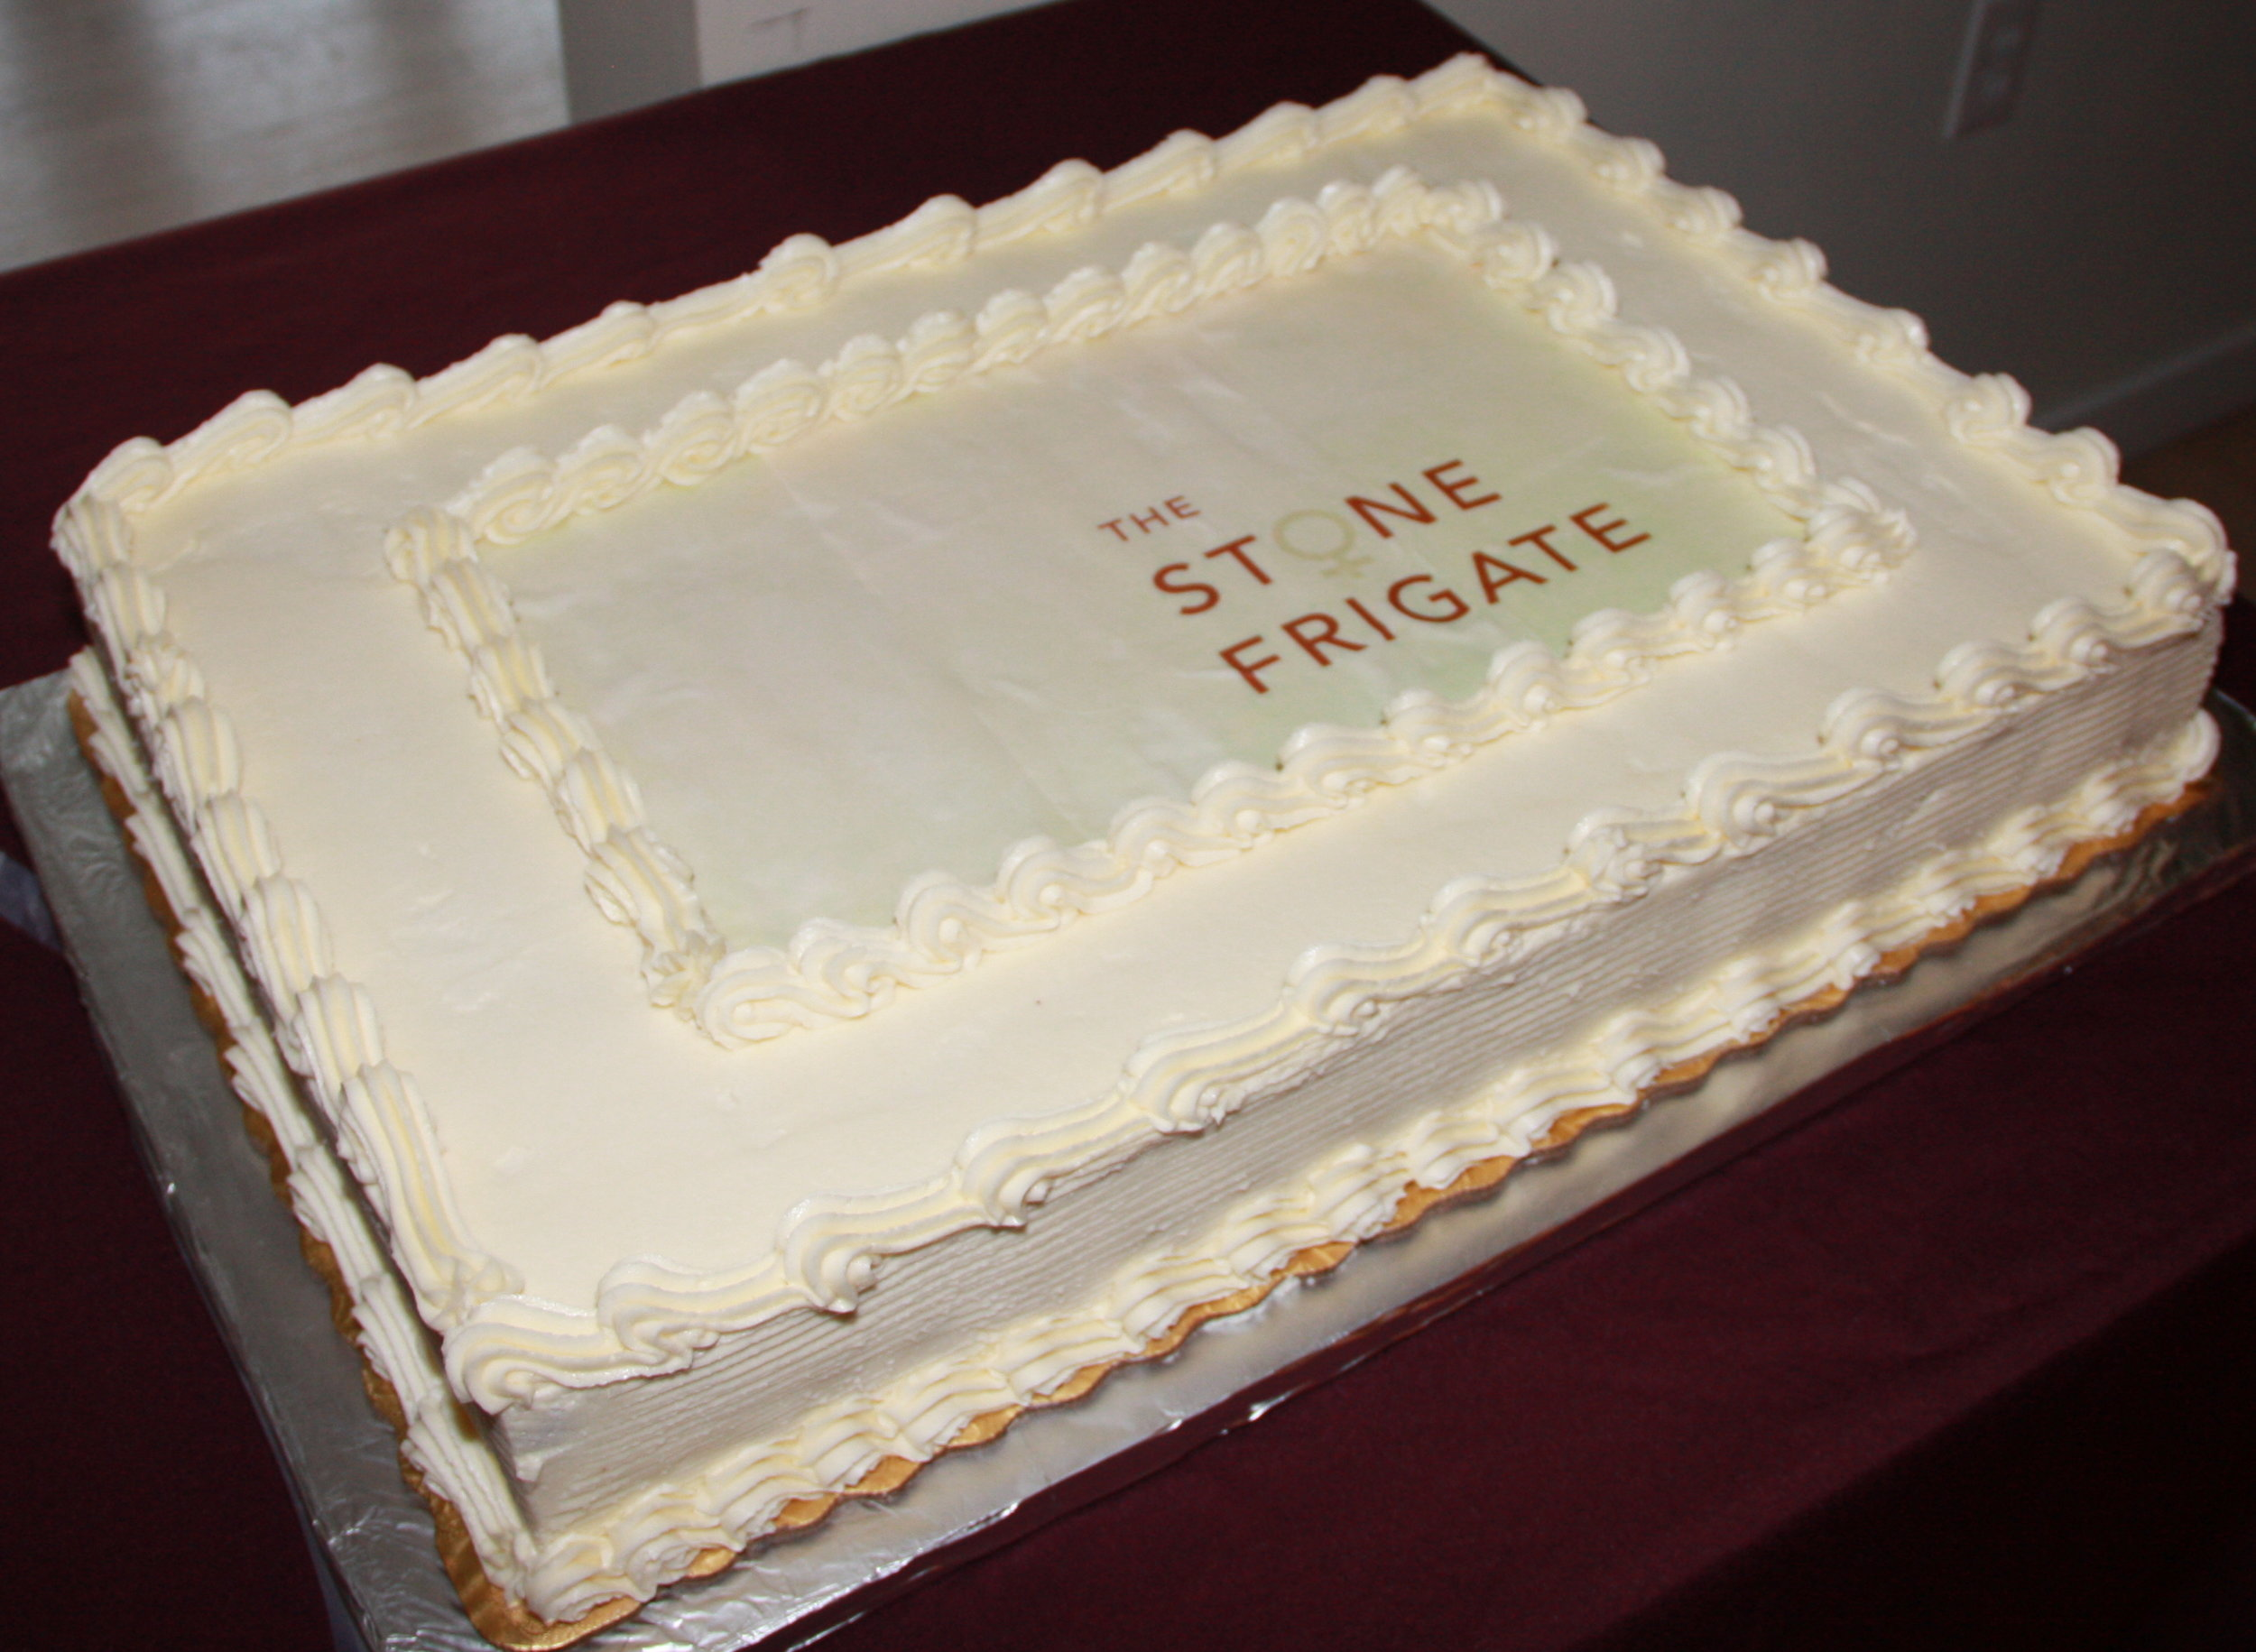 A special order Tuxedo cake was served up during the 'social' afterwards.